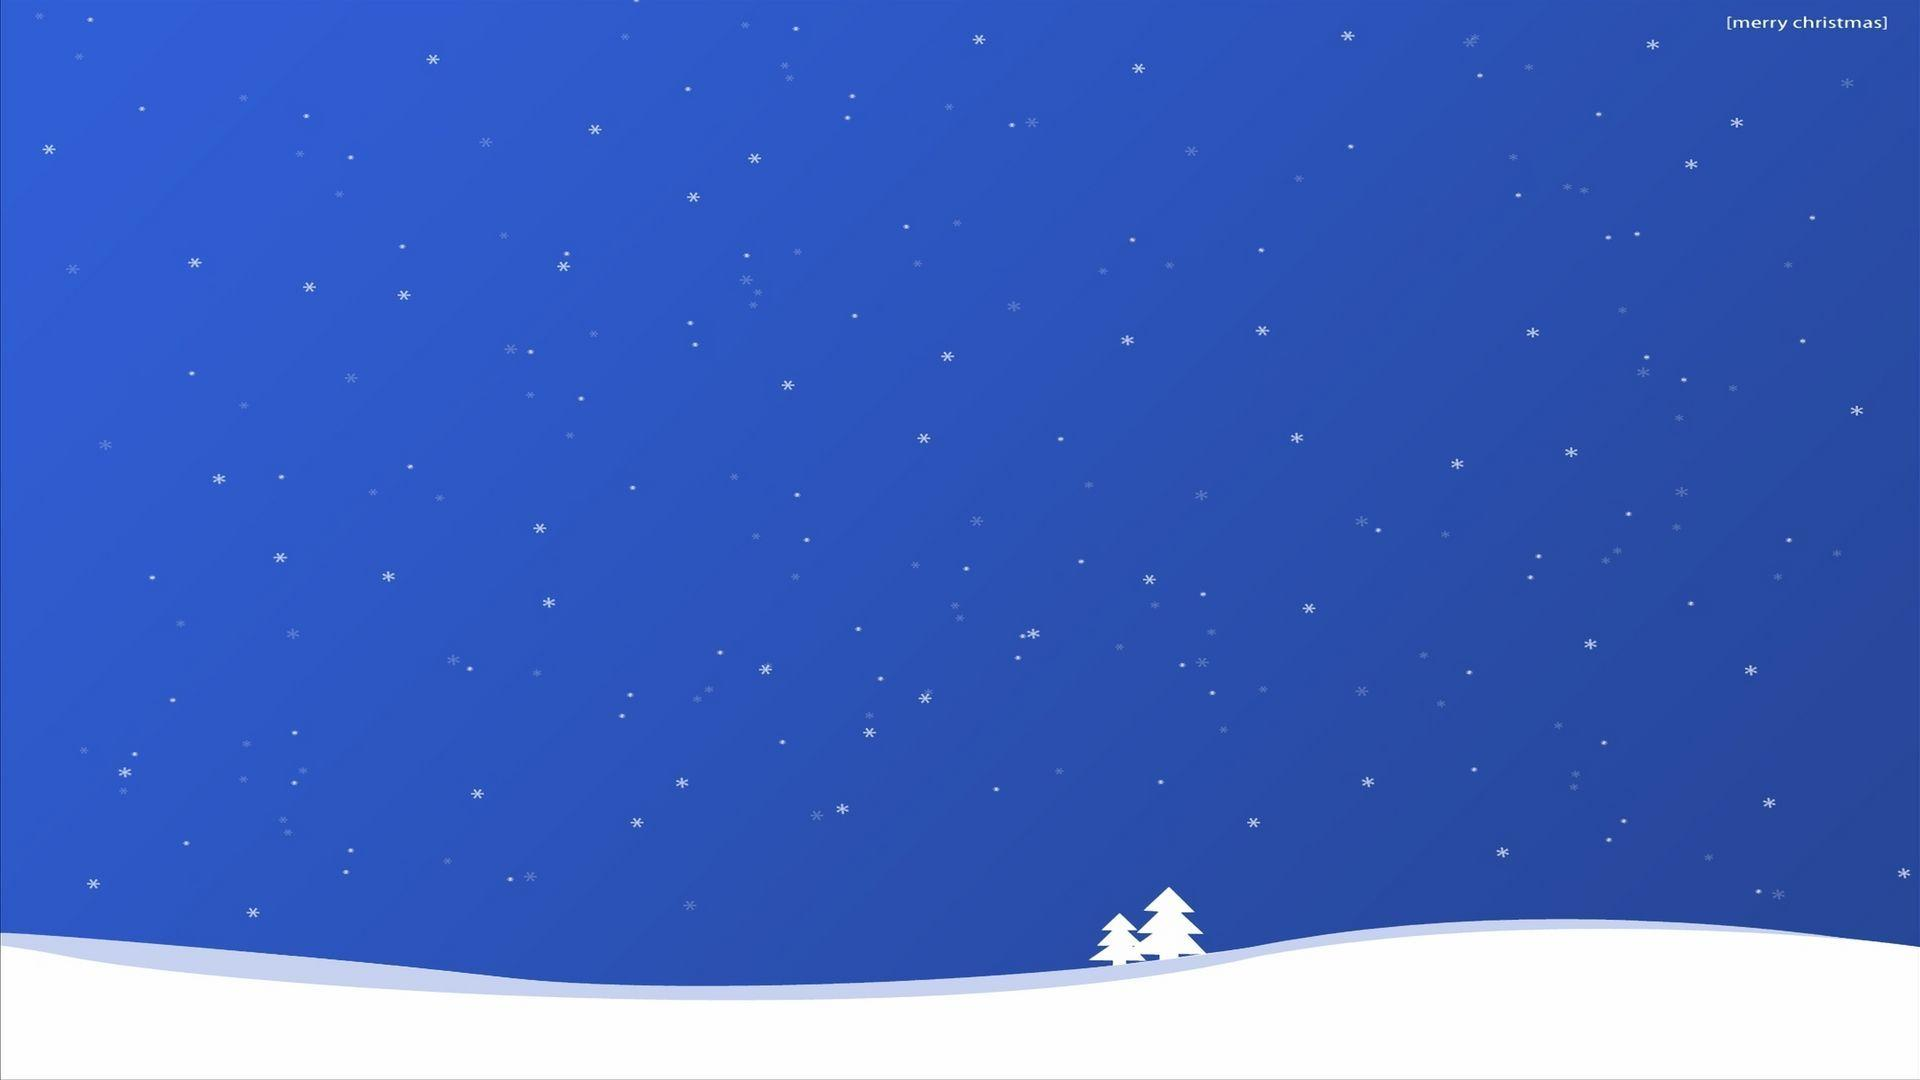 Christmas Wallpaper 1920X1080 hd pictures